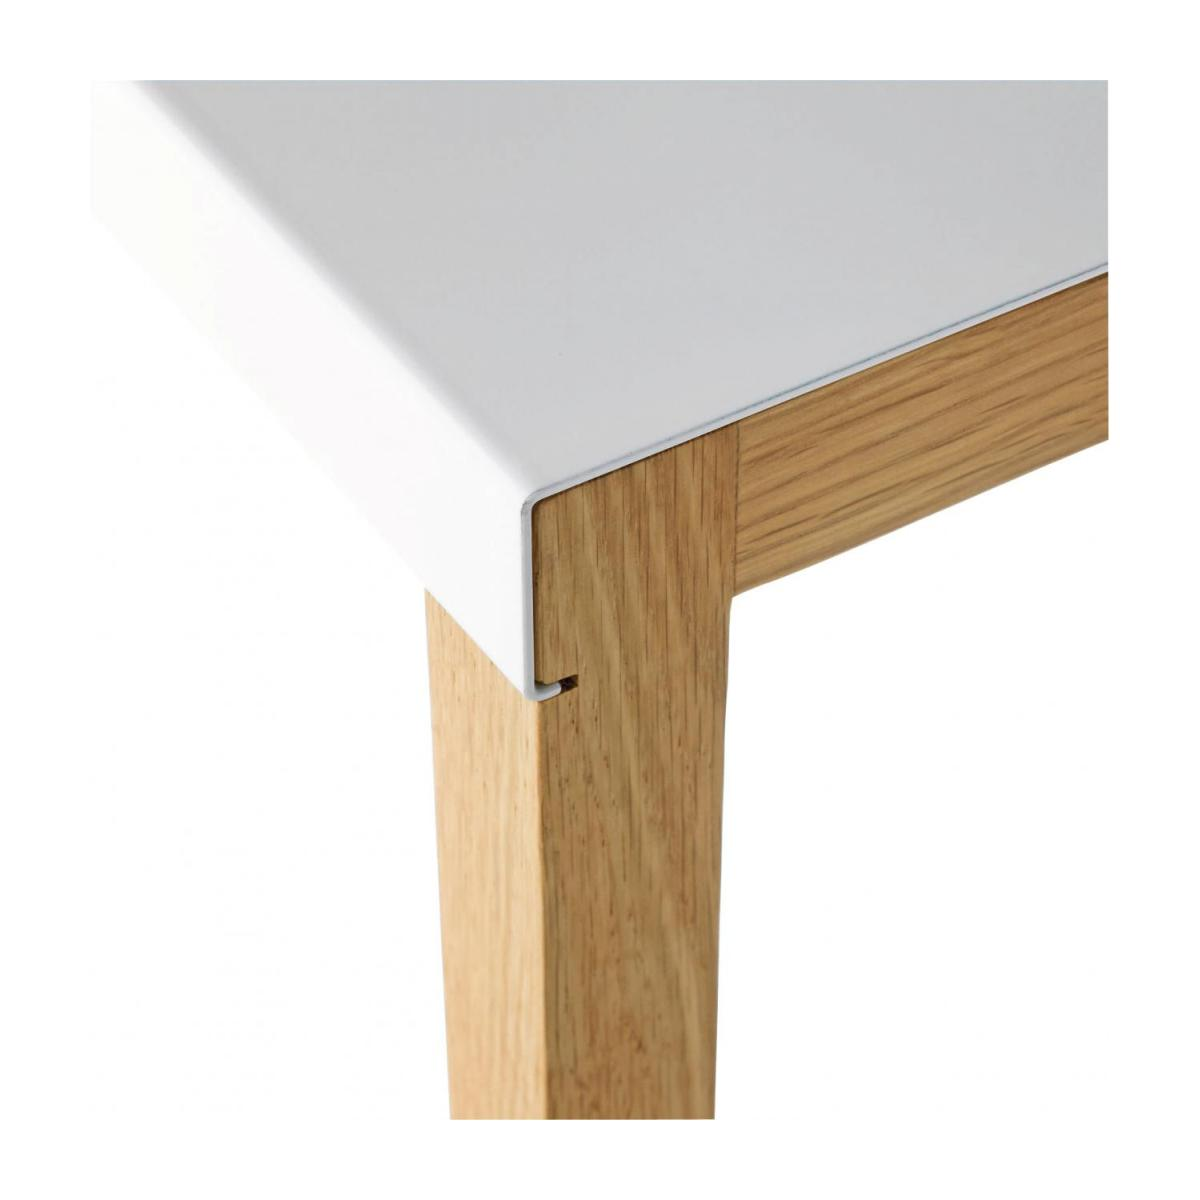 Table d'appoint blanche n°4